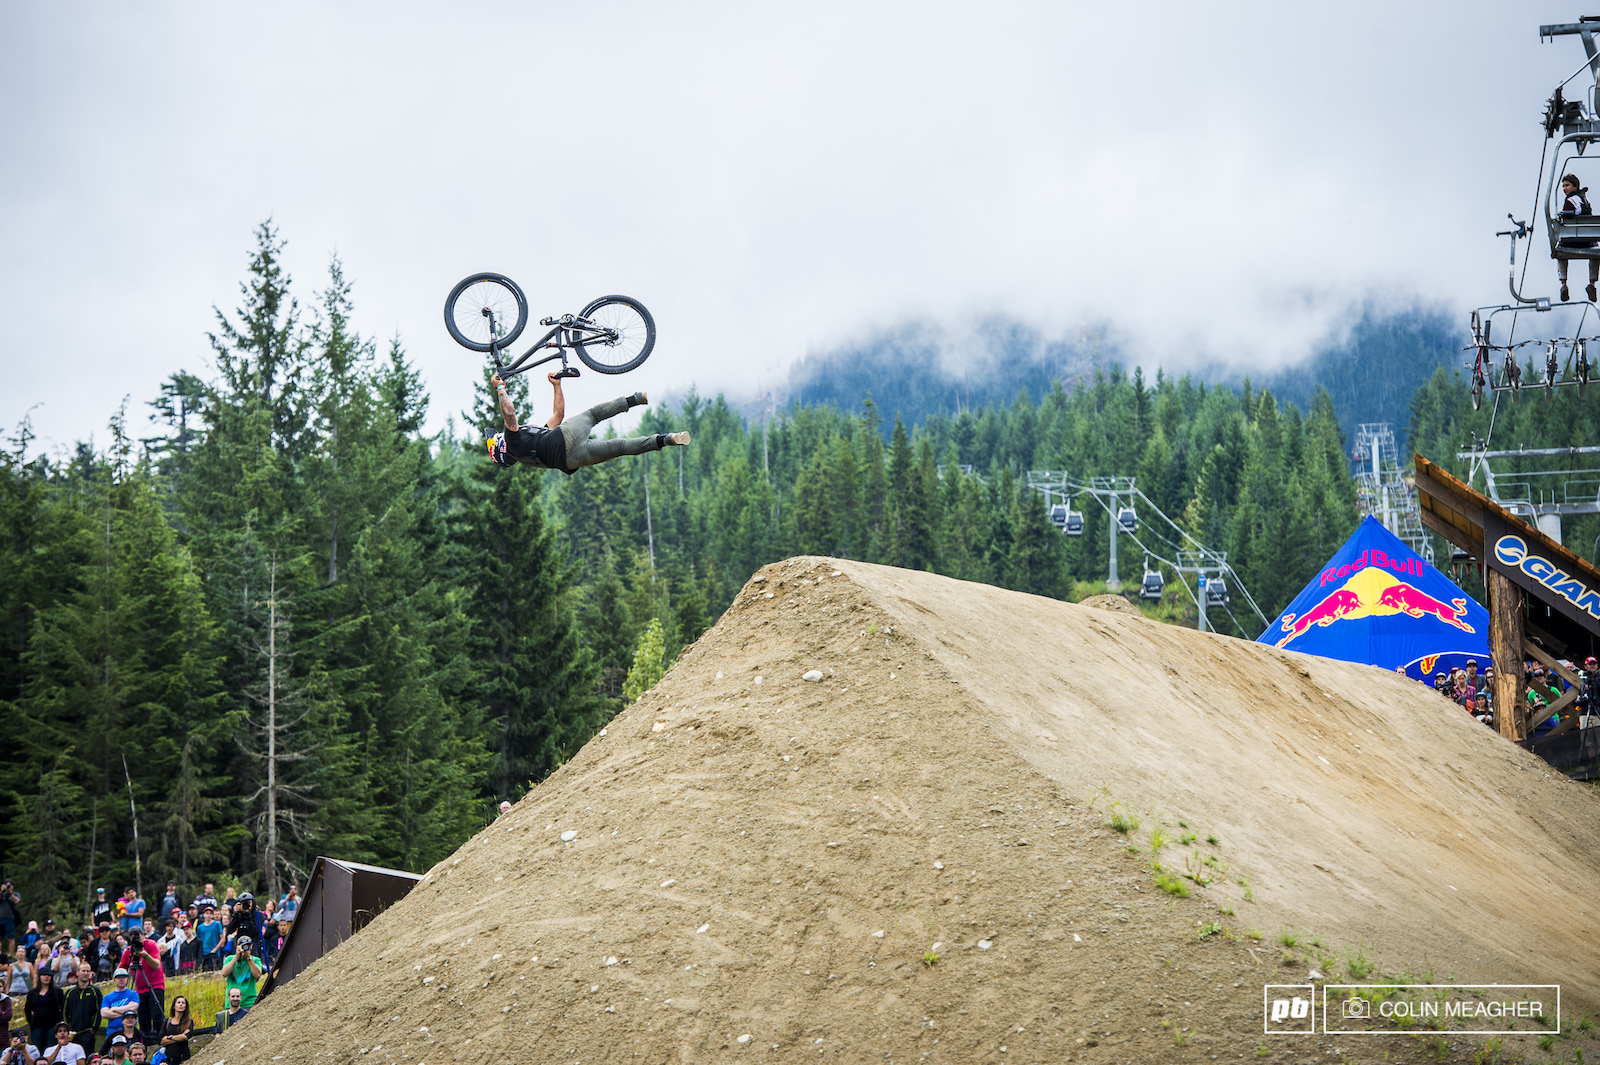 Grannieri getting all twisted up with the super man seat grab Indian backflip. Just thinking about that makes me ill.